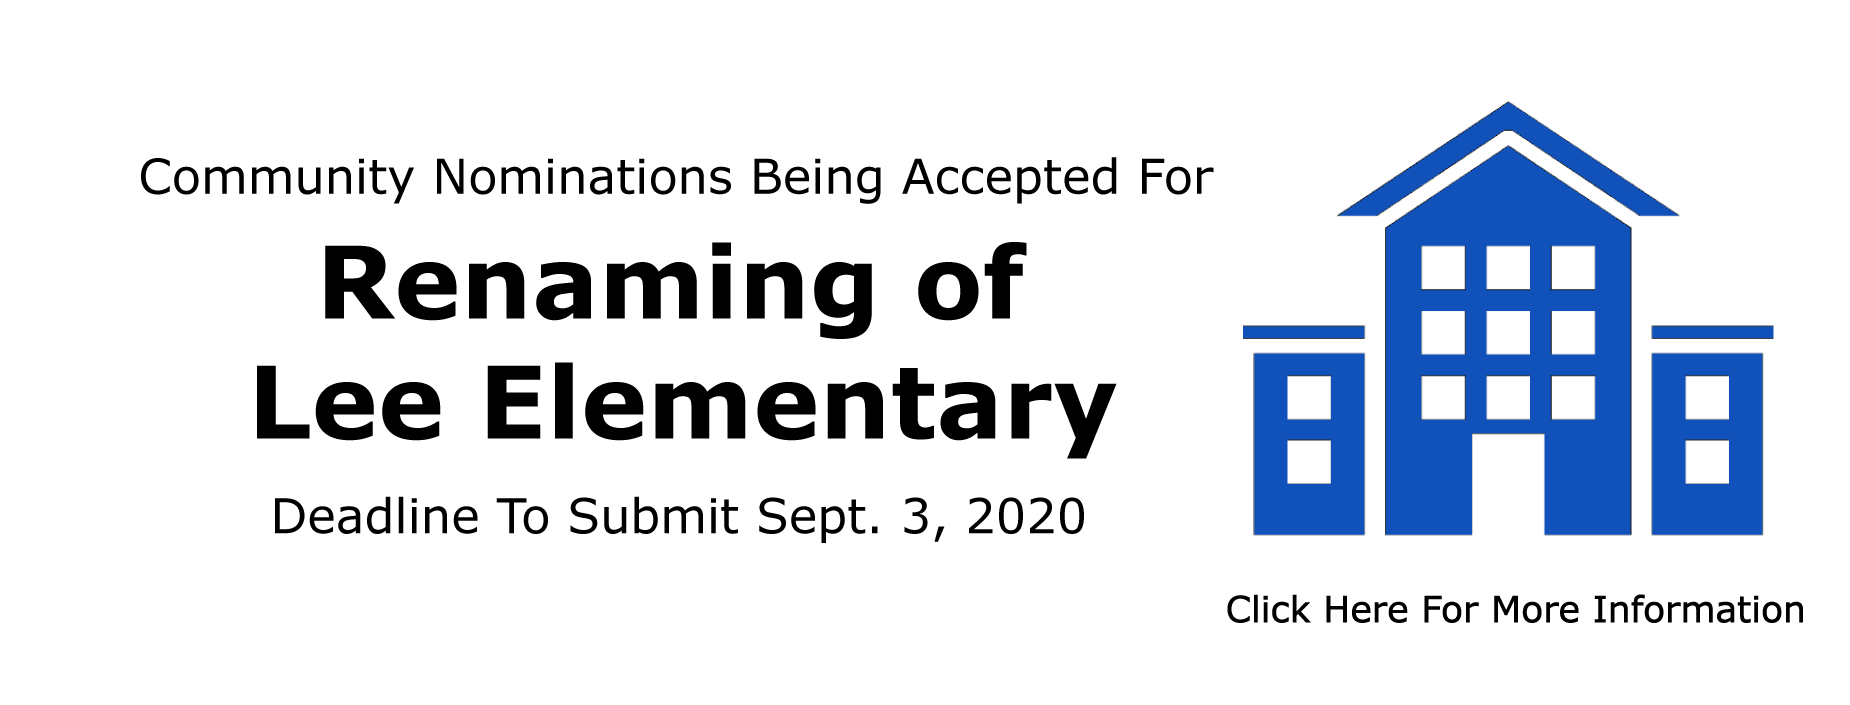 Community Nominations being accepted for renaming of lee elmentary.  Deadline to submit september 3 2020.